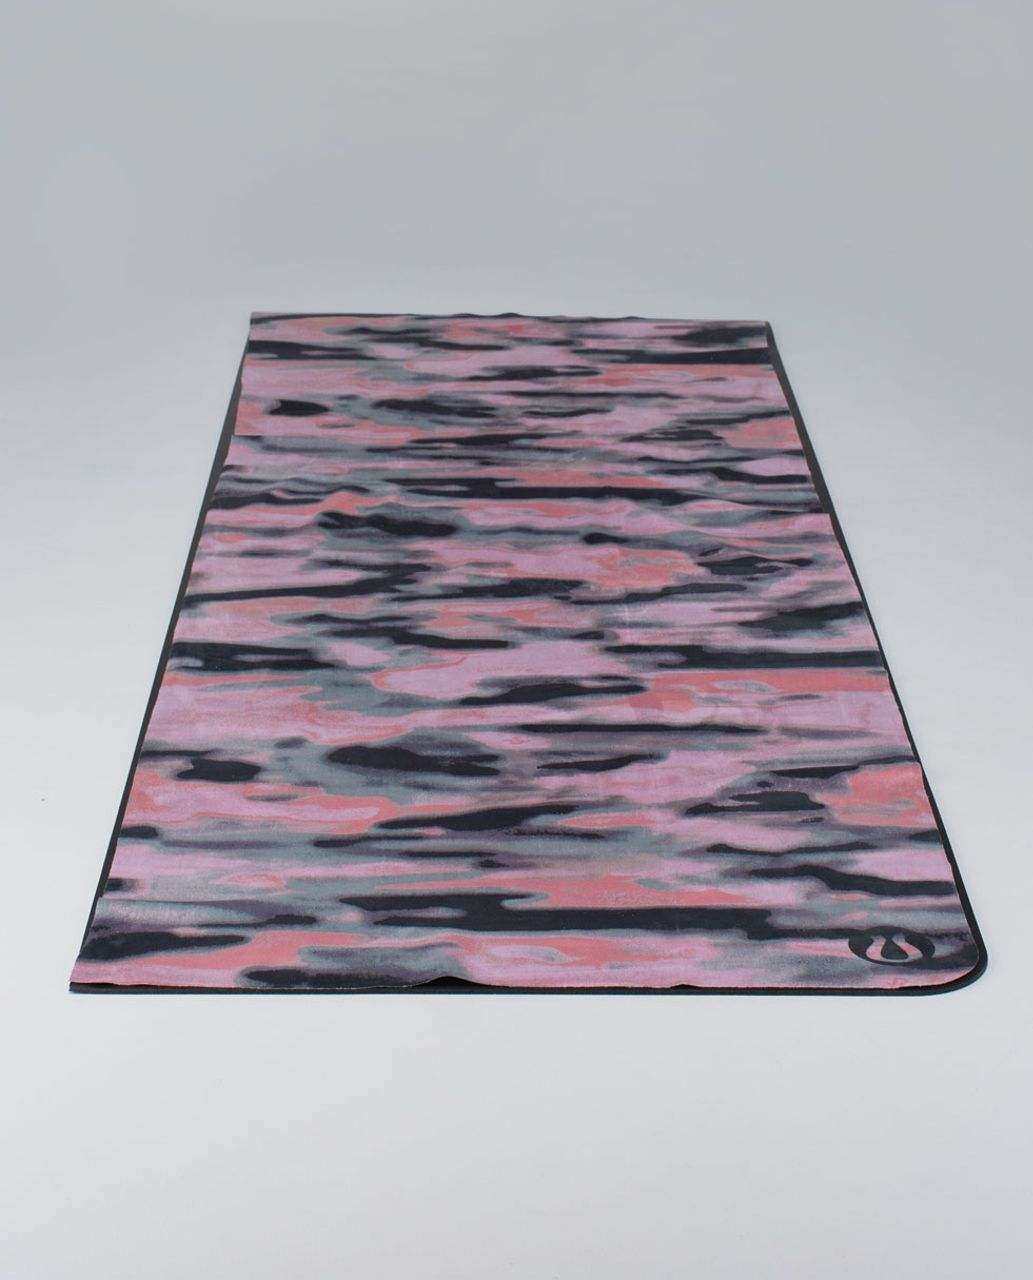 Lululemon The Towel *Printed - Giant Wamo Camo Barely Pink